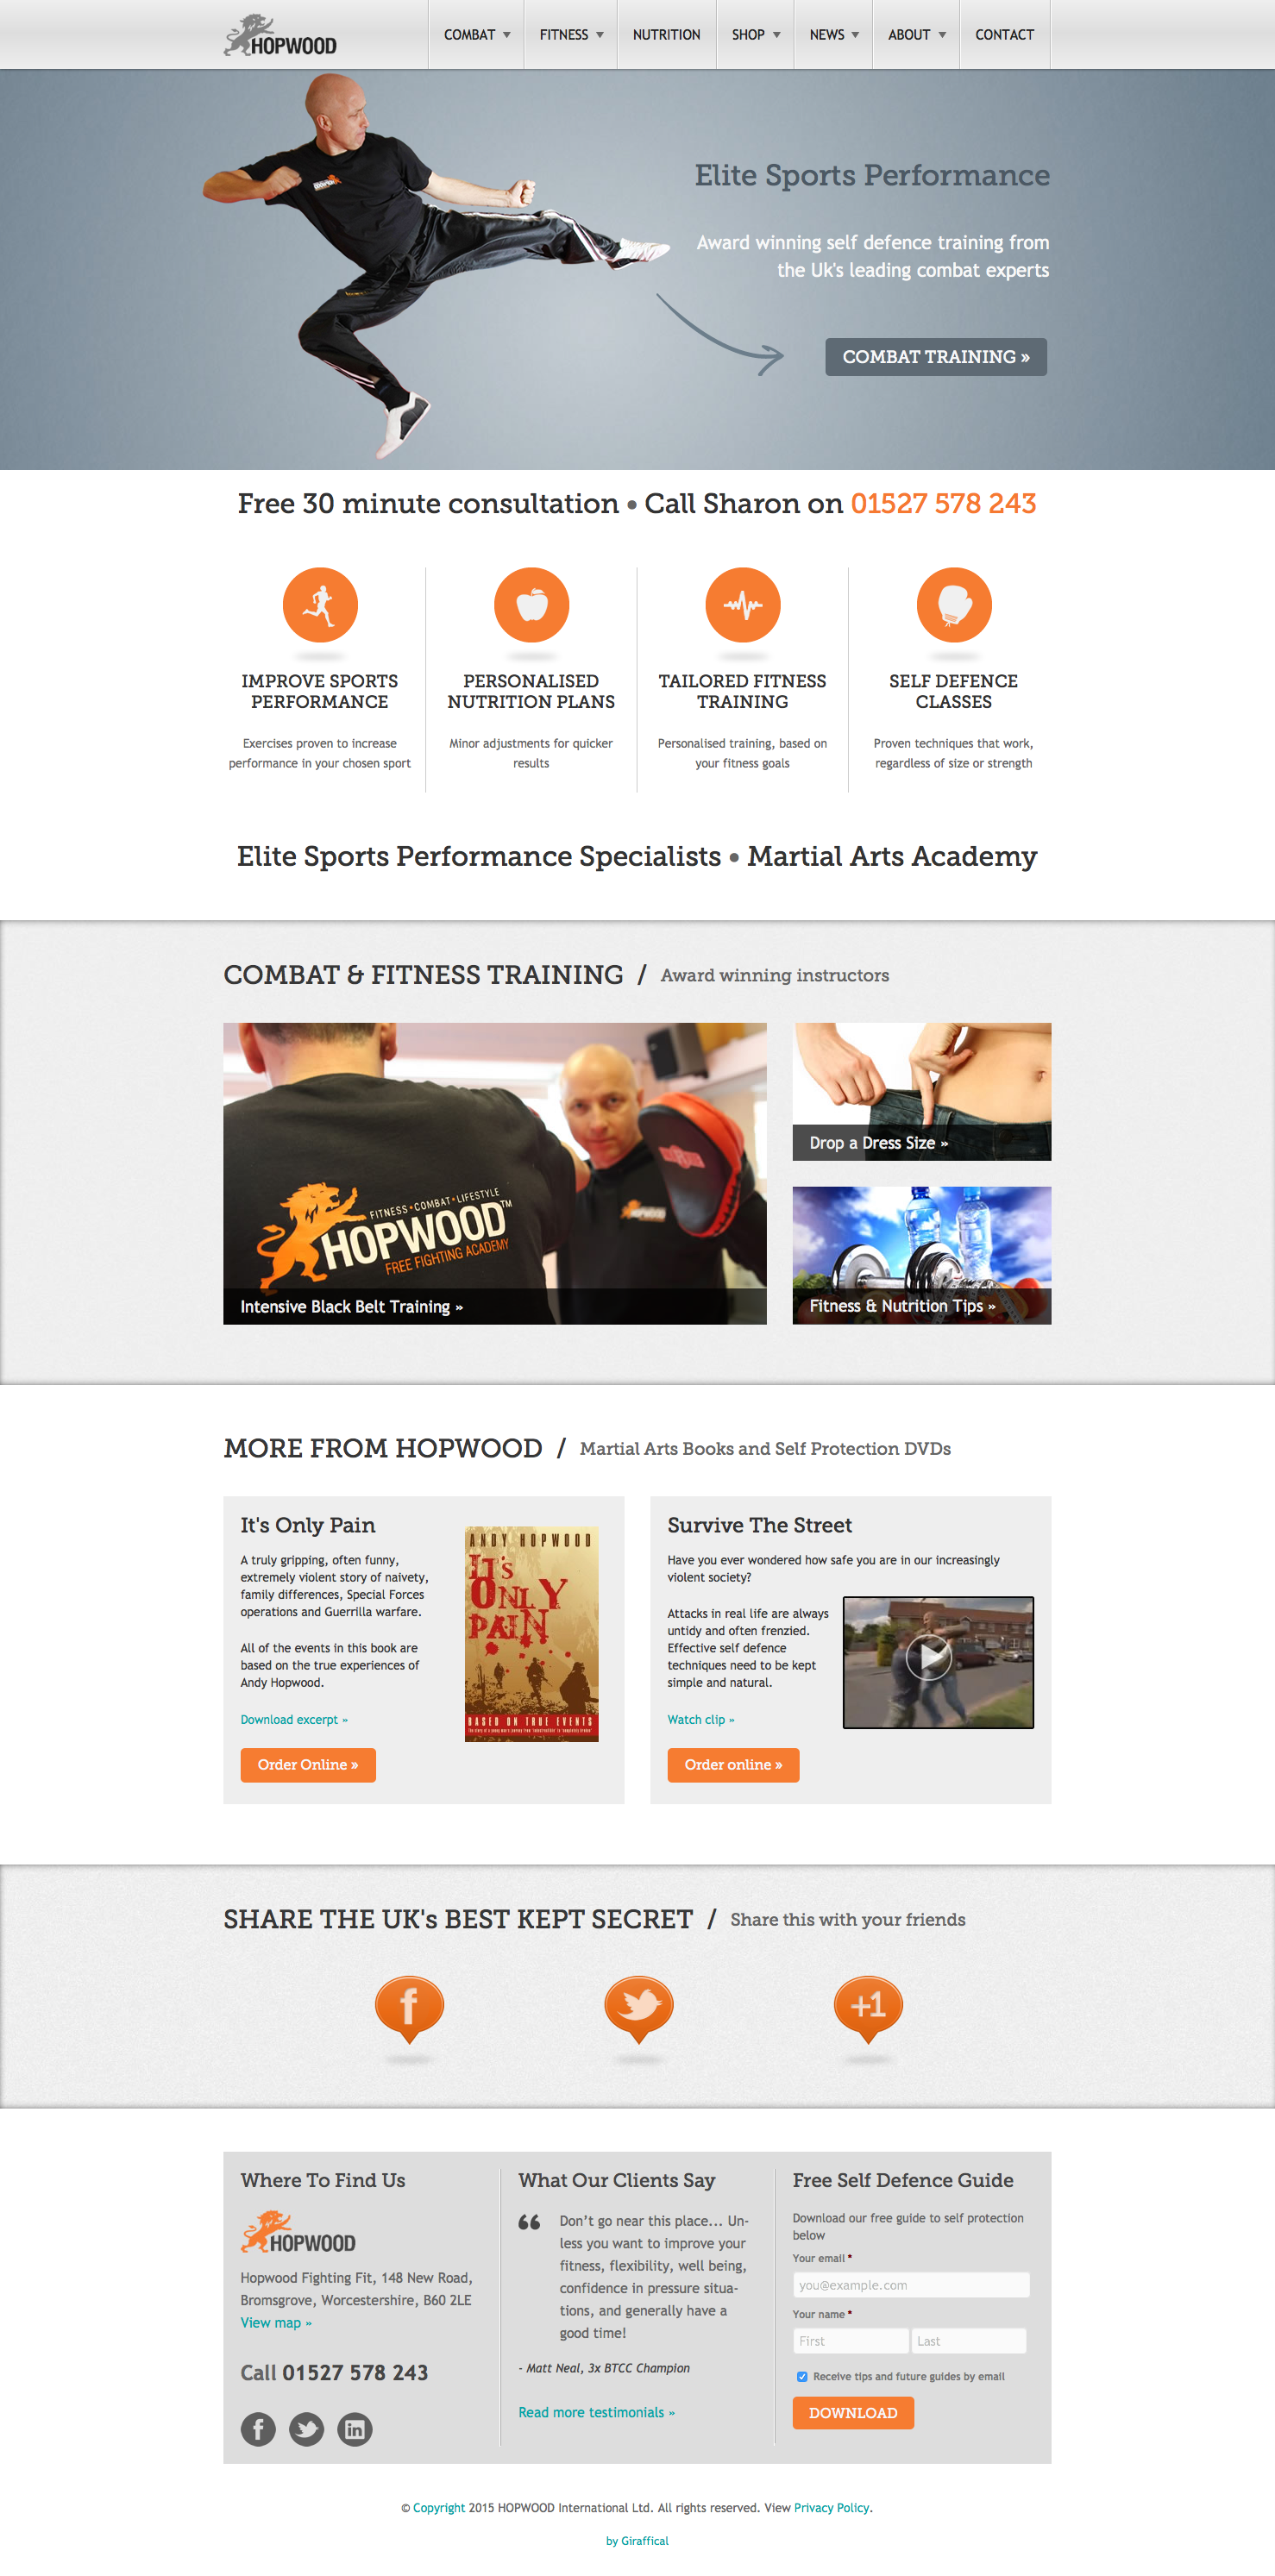 Hopwood UK Website Redesign - Home Page